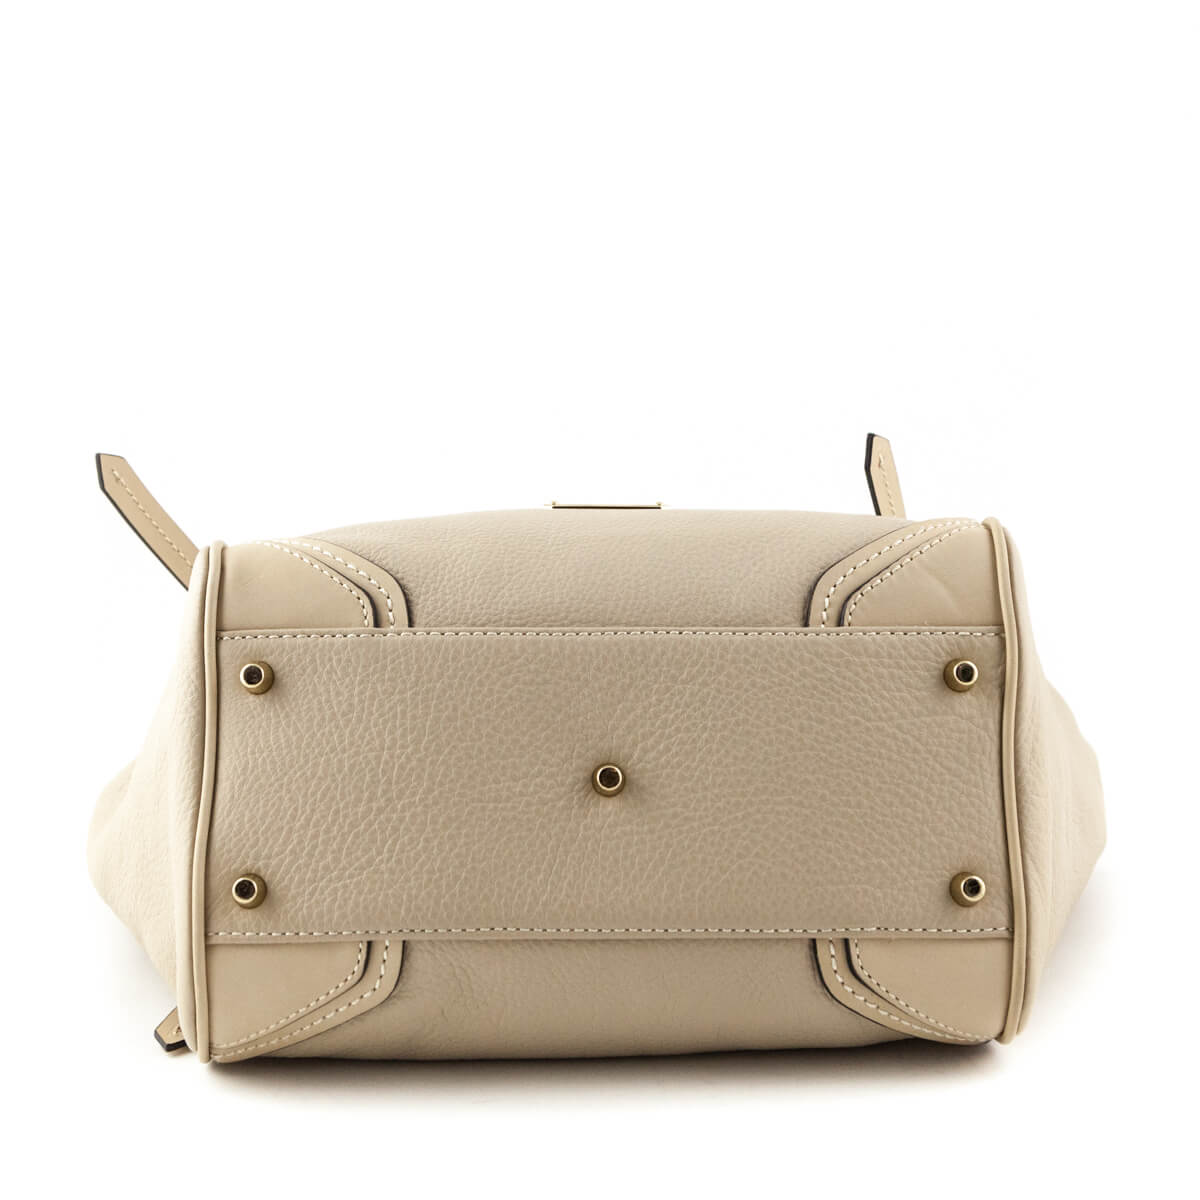 ddaac3d47acc ... Burberry Beige Leather Canterbury Tassel Tote w  Pouch - LOVE that BAG  - Preowned Authentic ...